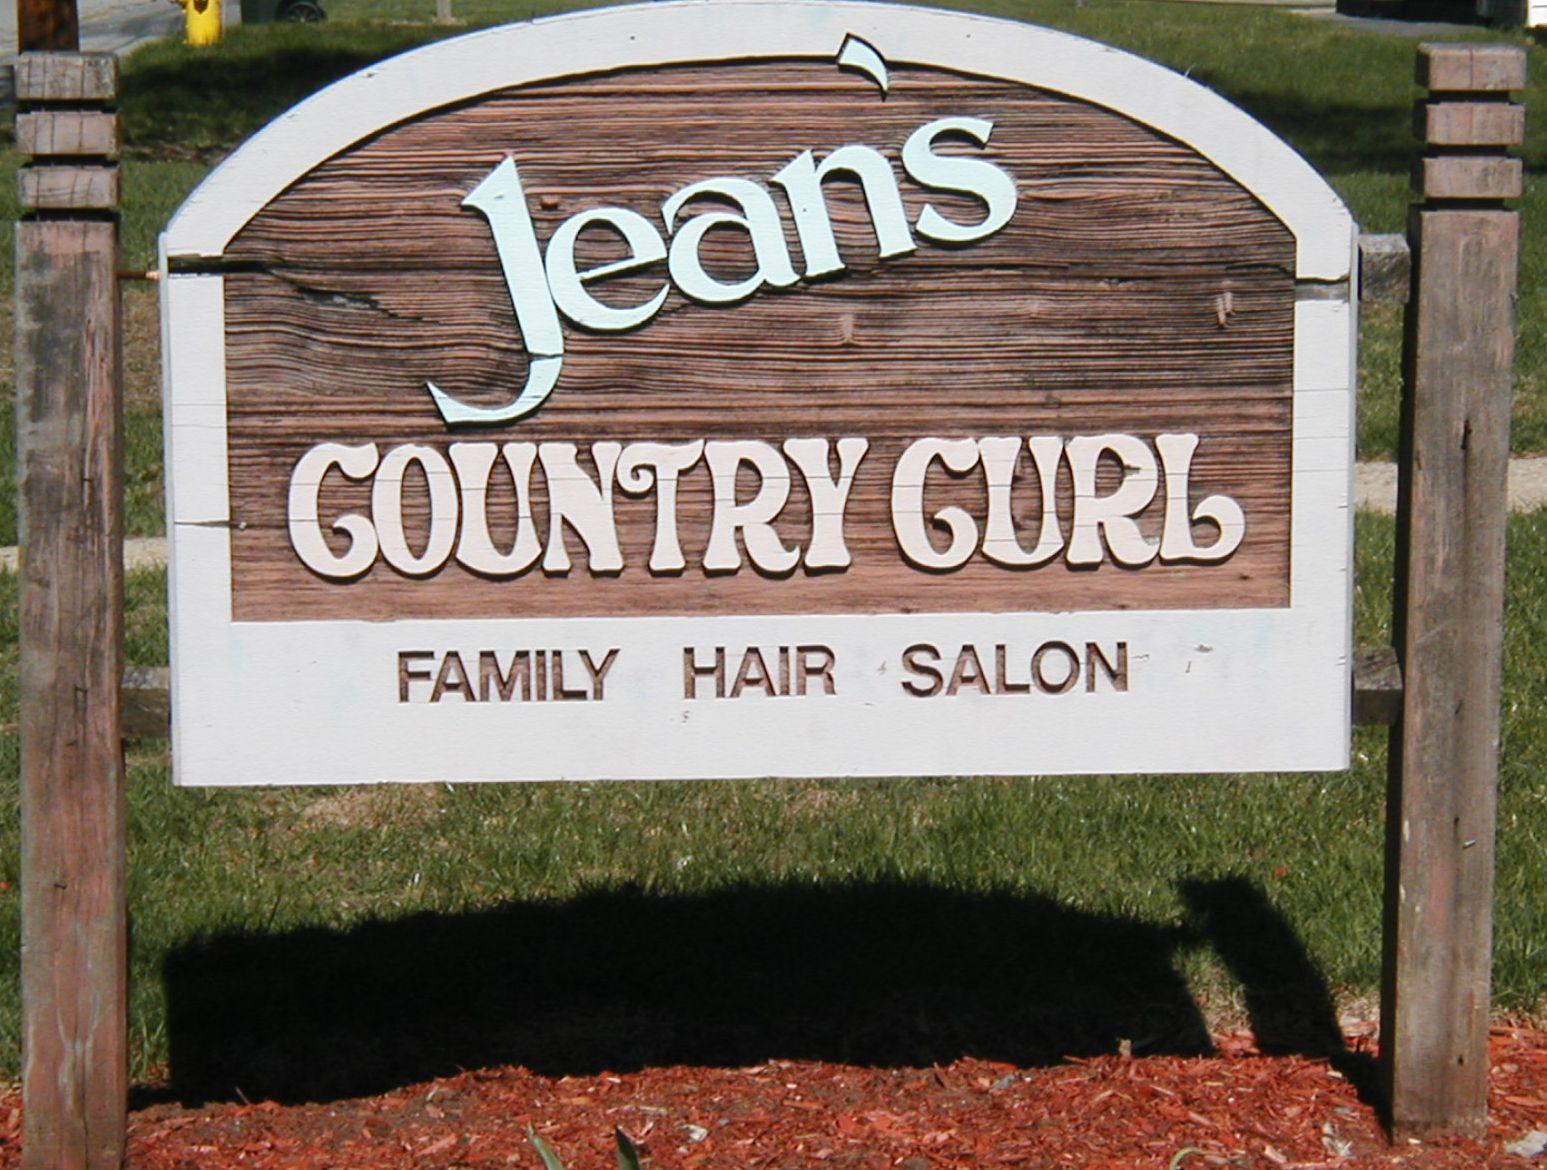 Jean's Country Curl